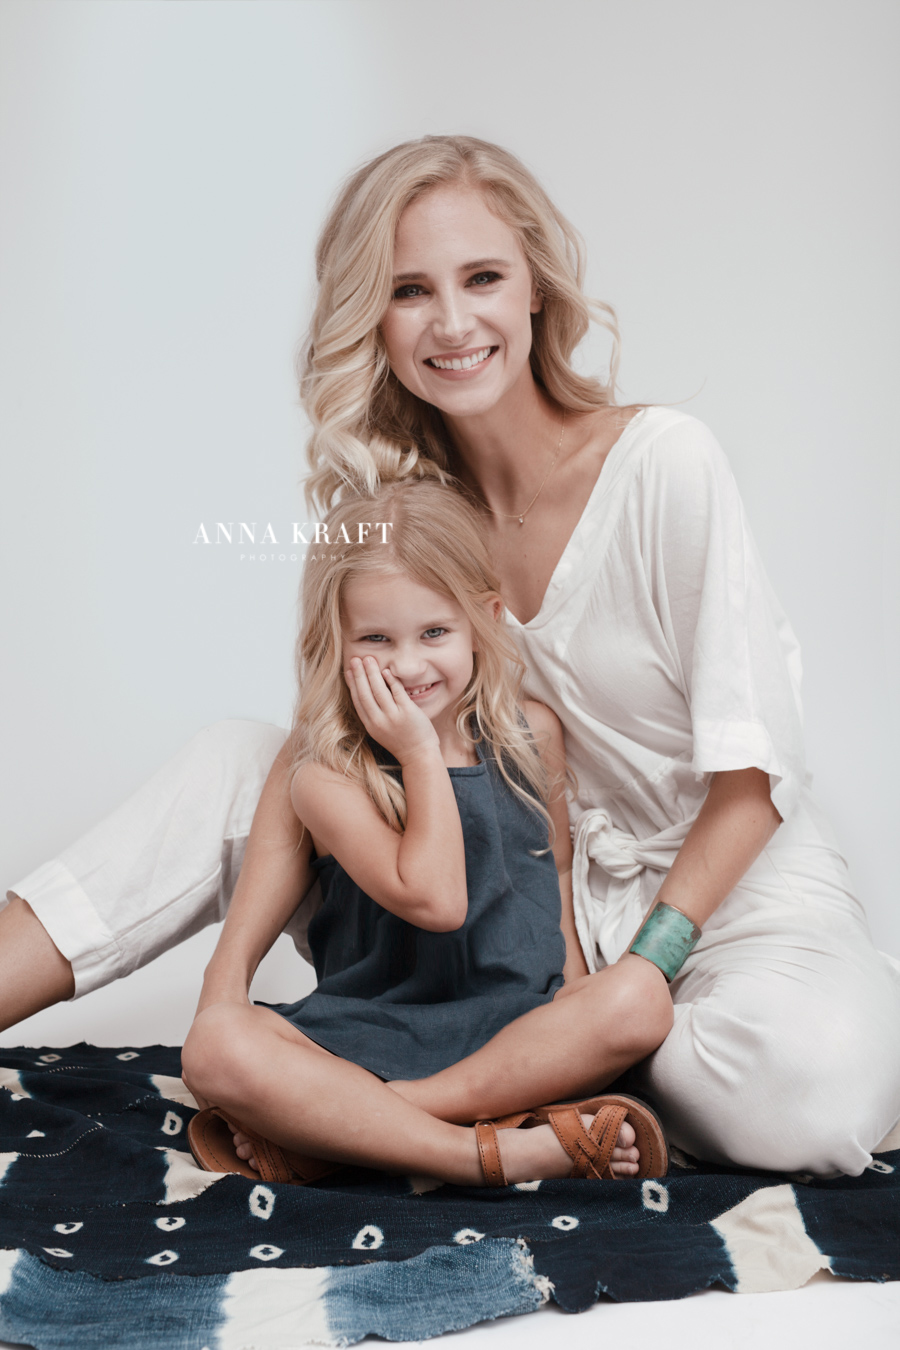 anna_kraft_photography_georgetown_square_studio_family_portrait_Christmas_walters_pictures-2.jpg